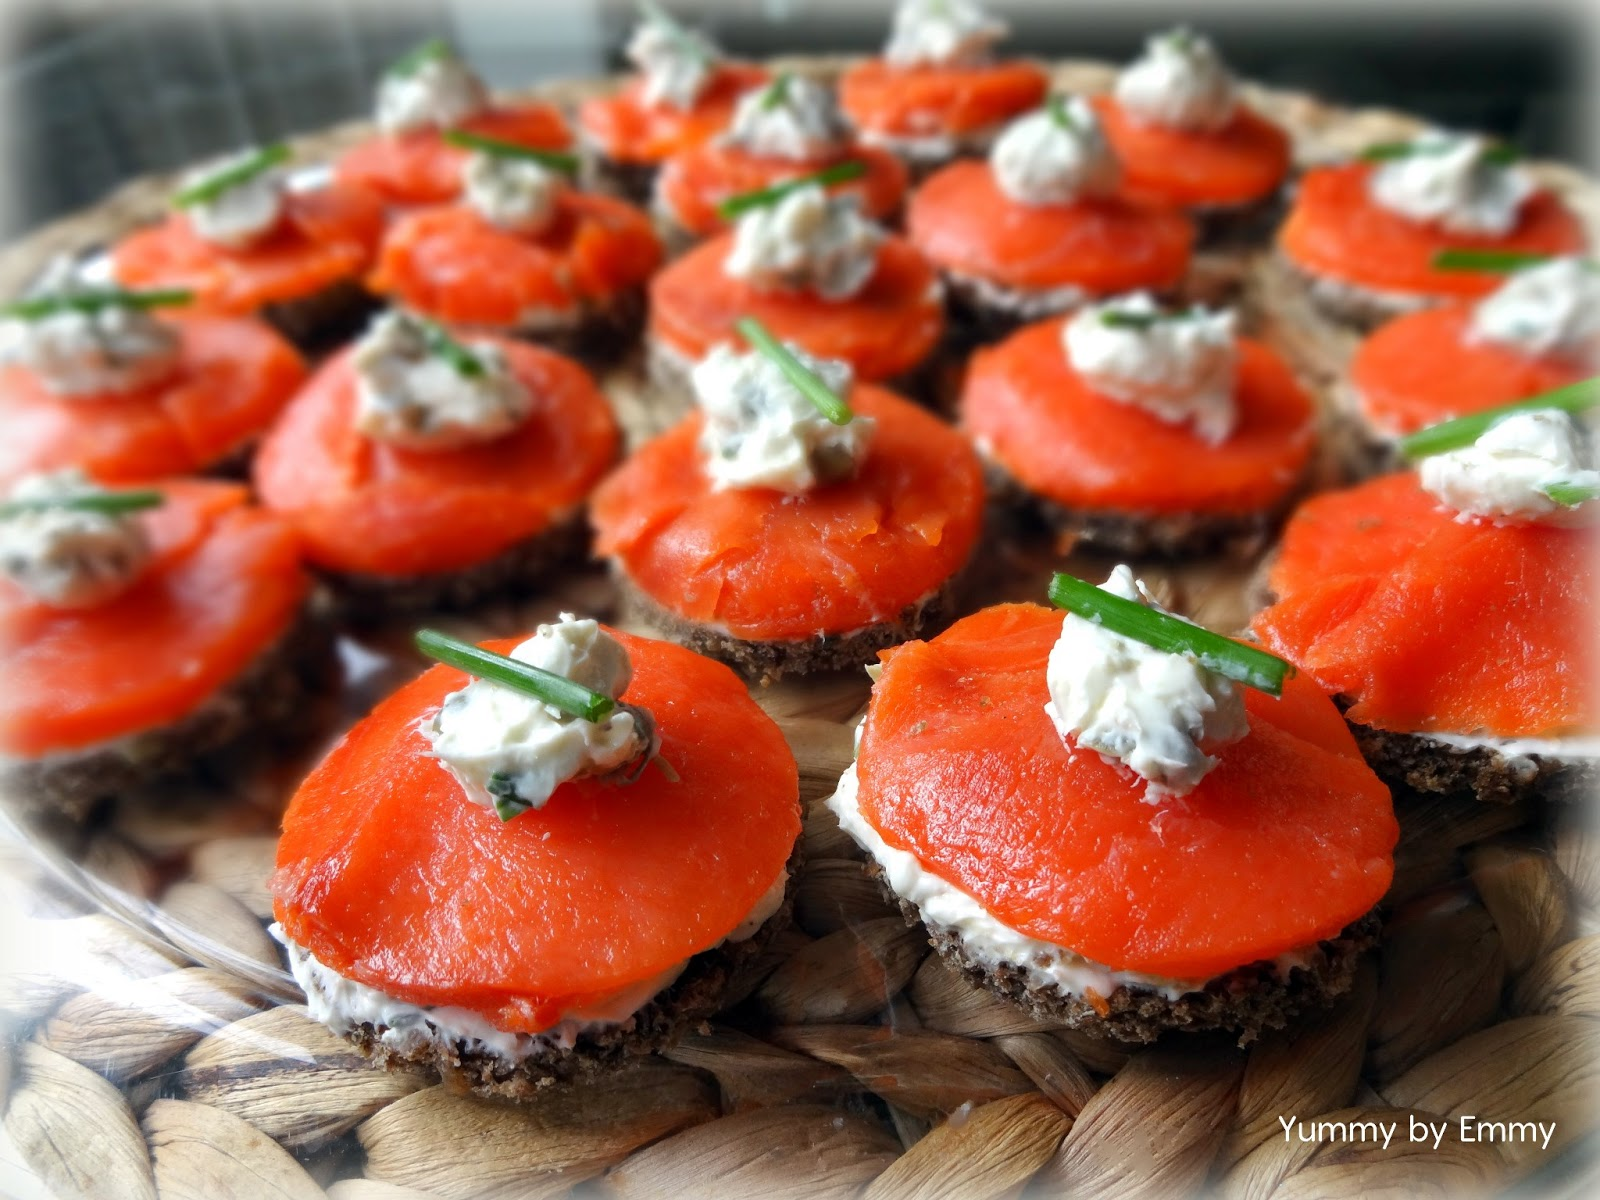 Yummy by Emmy: Smoked Salmon Finger Sandwiches